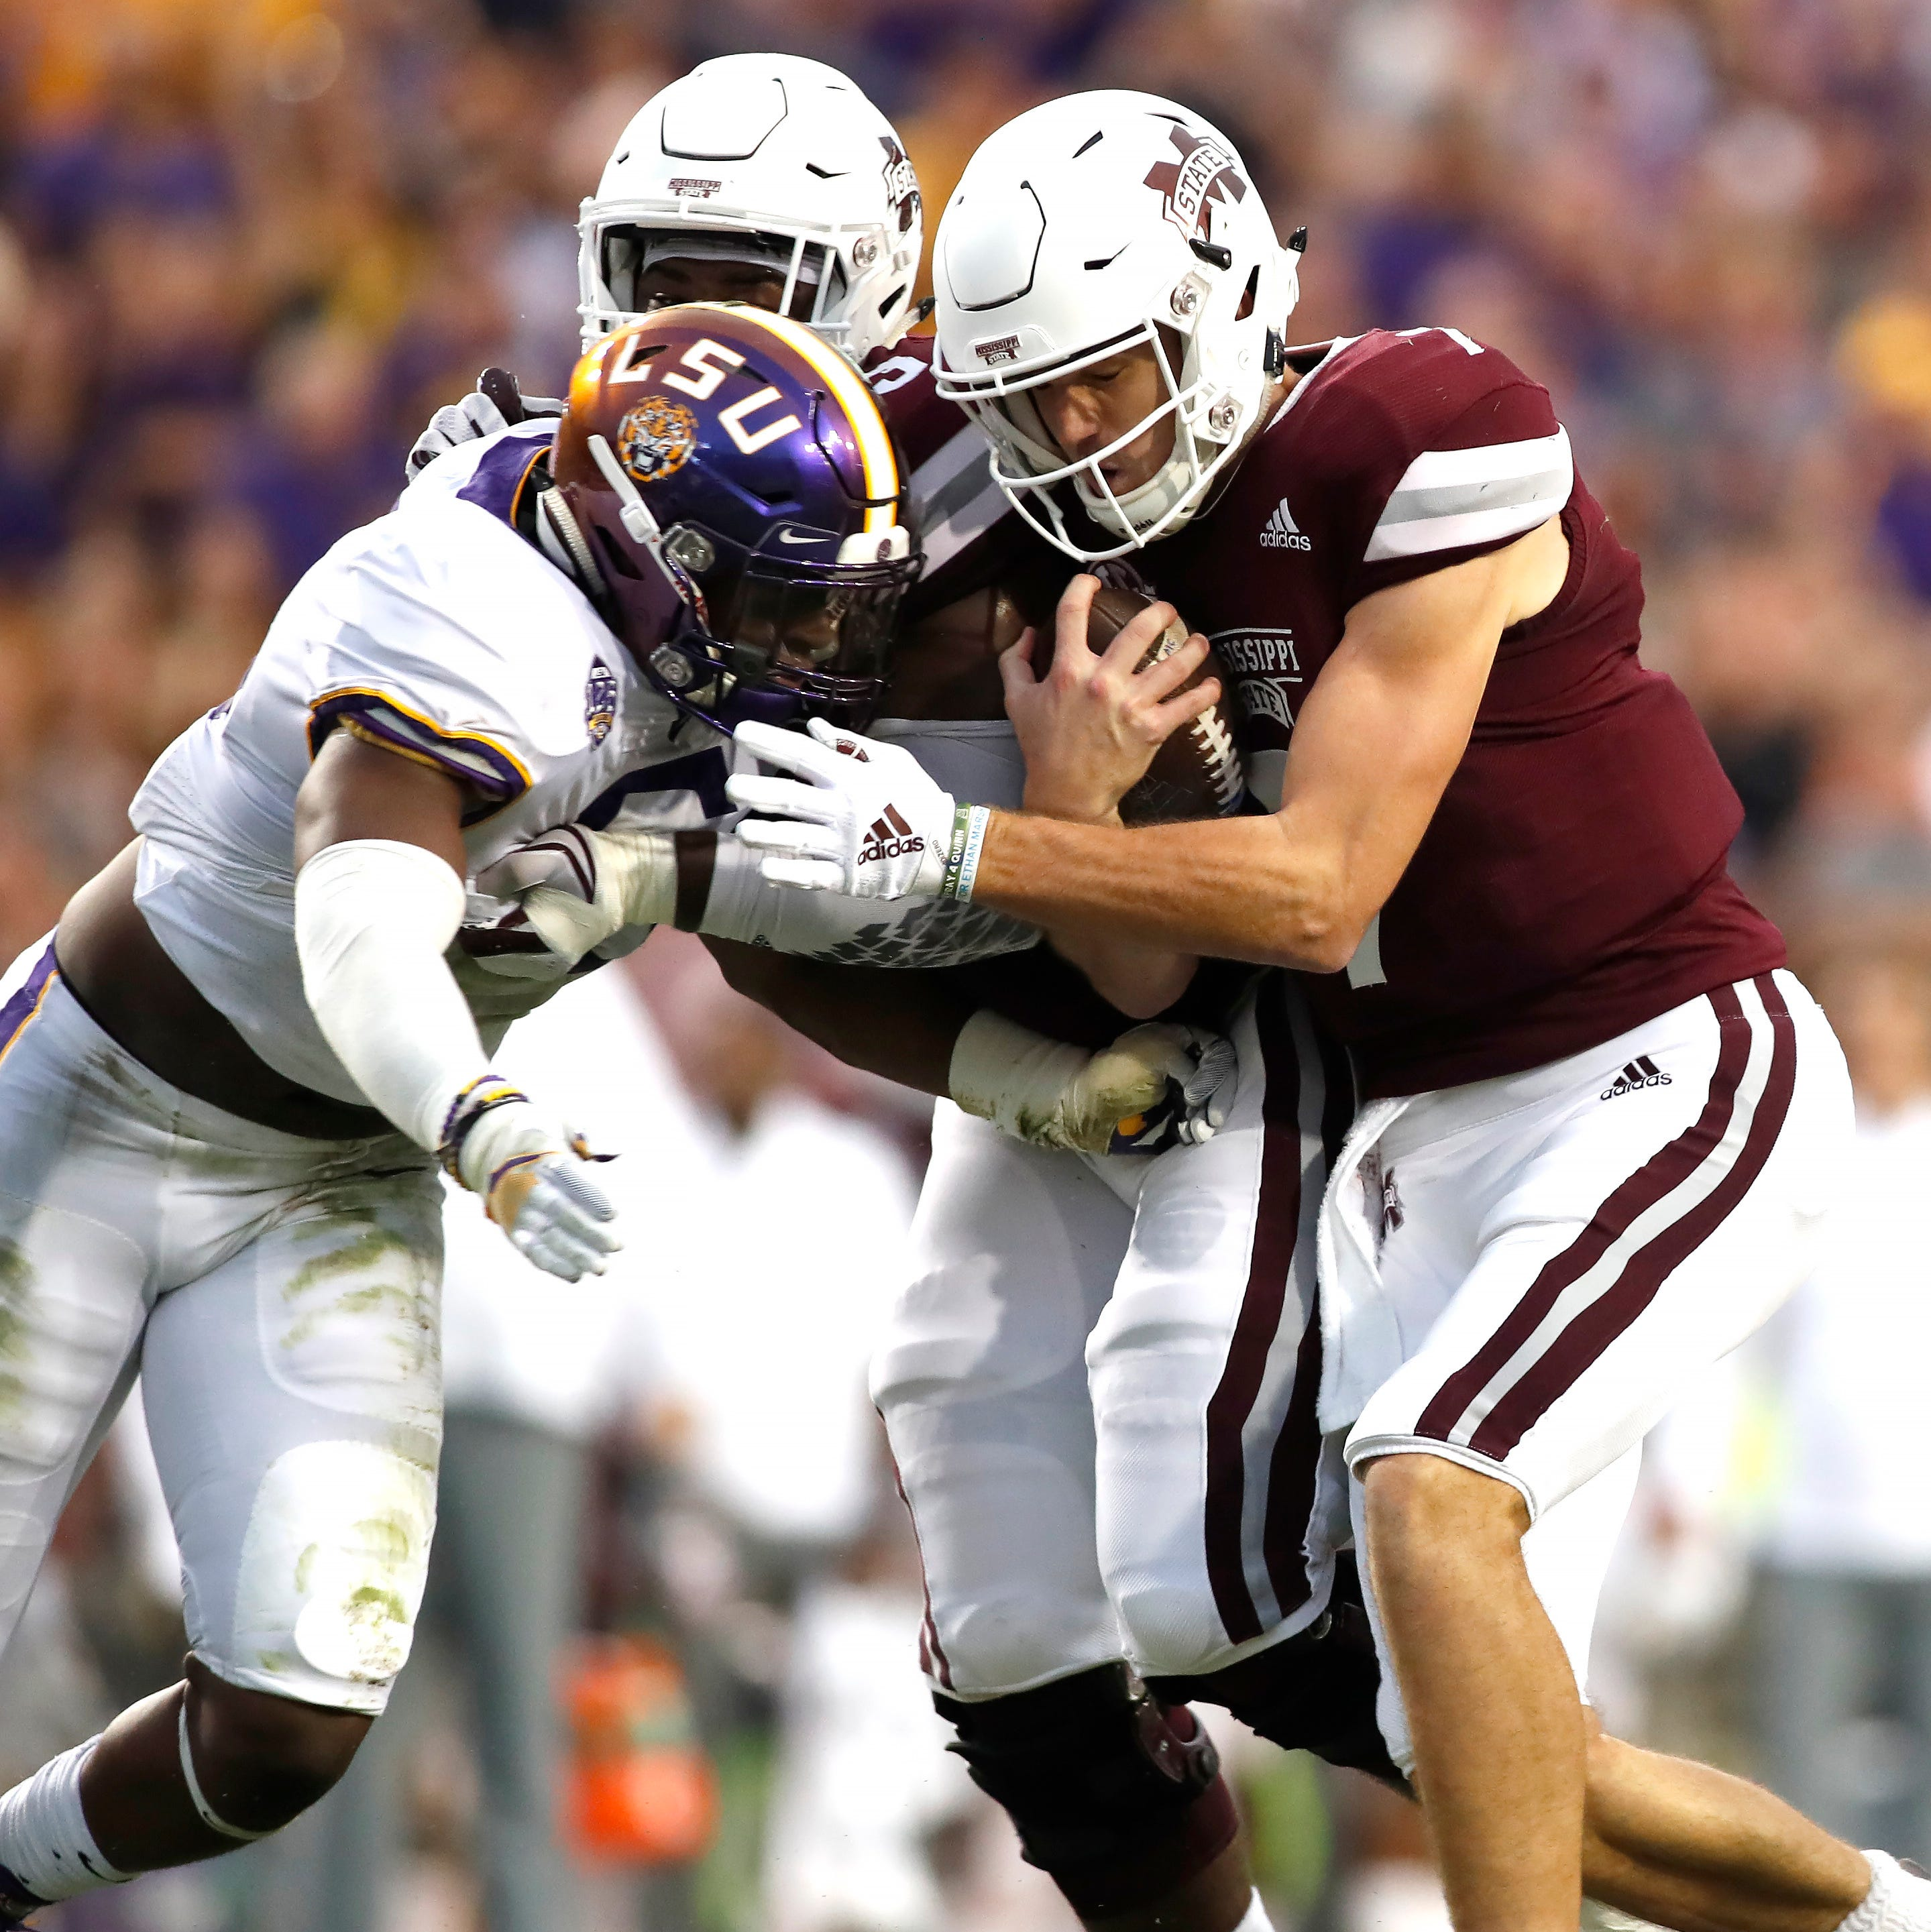 MSU's running-on-empty offense leaves the Bulldogs a Tiger Stadium loser